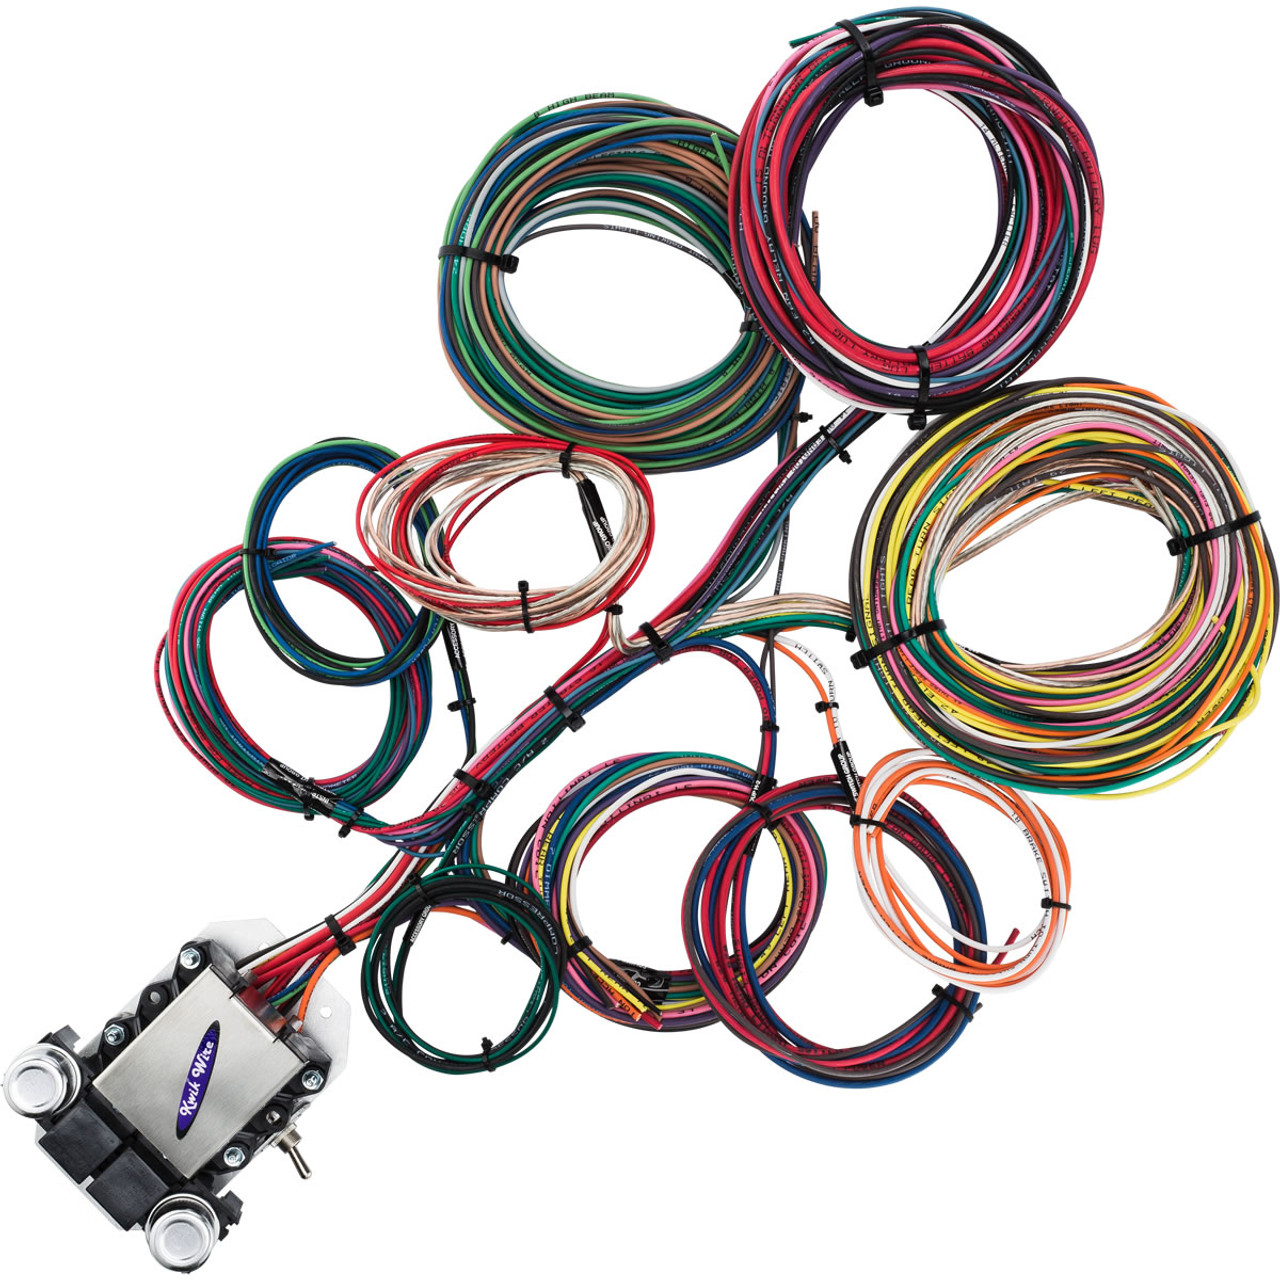 14 circuit wire harness kwikwire com electrify your ride Electrical Wiring Connector Electrical Wiring Harness #3